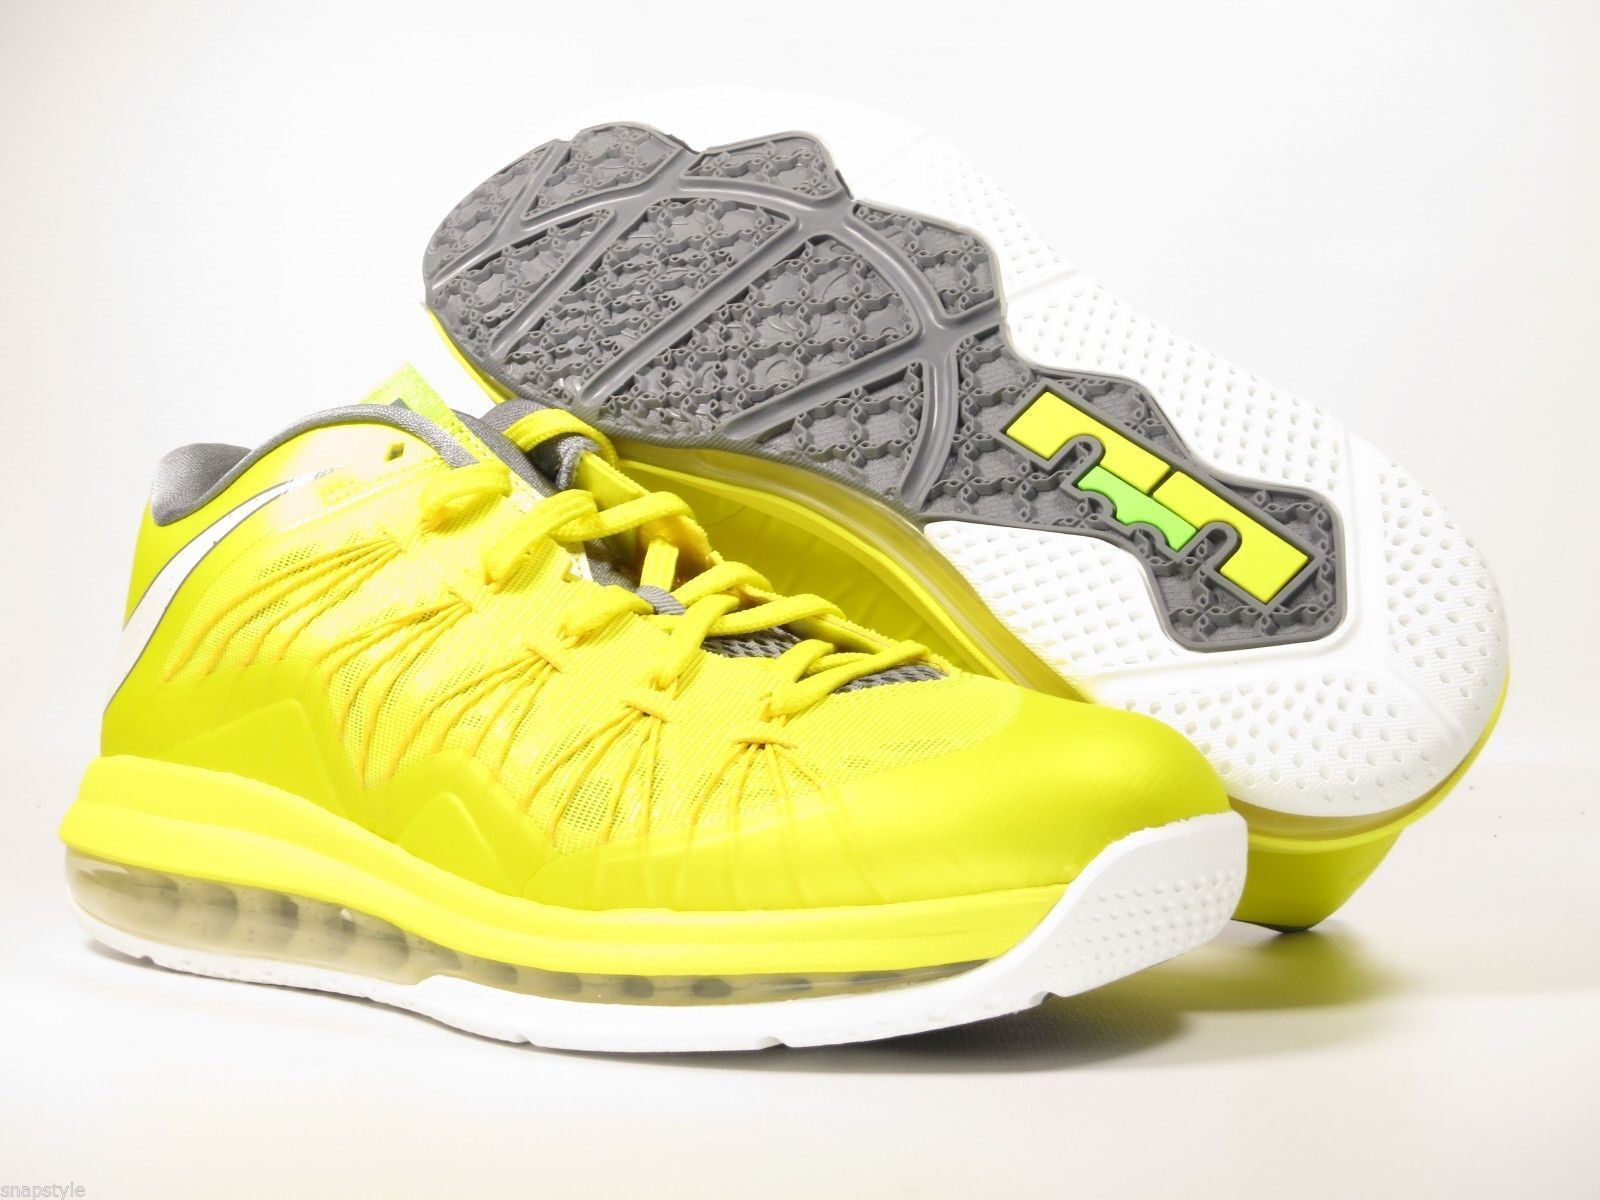 New AIR Max Lebron X Low 2013 - Sonic Yellow SL-Cool Grey-True Yellow Size 8